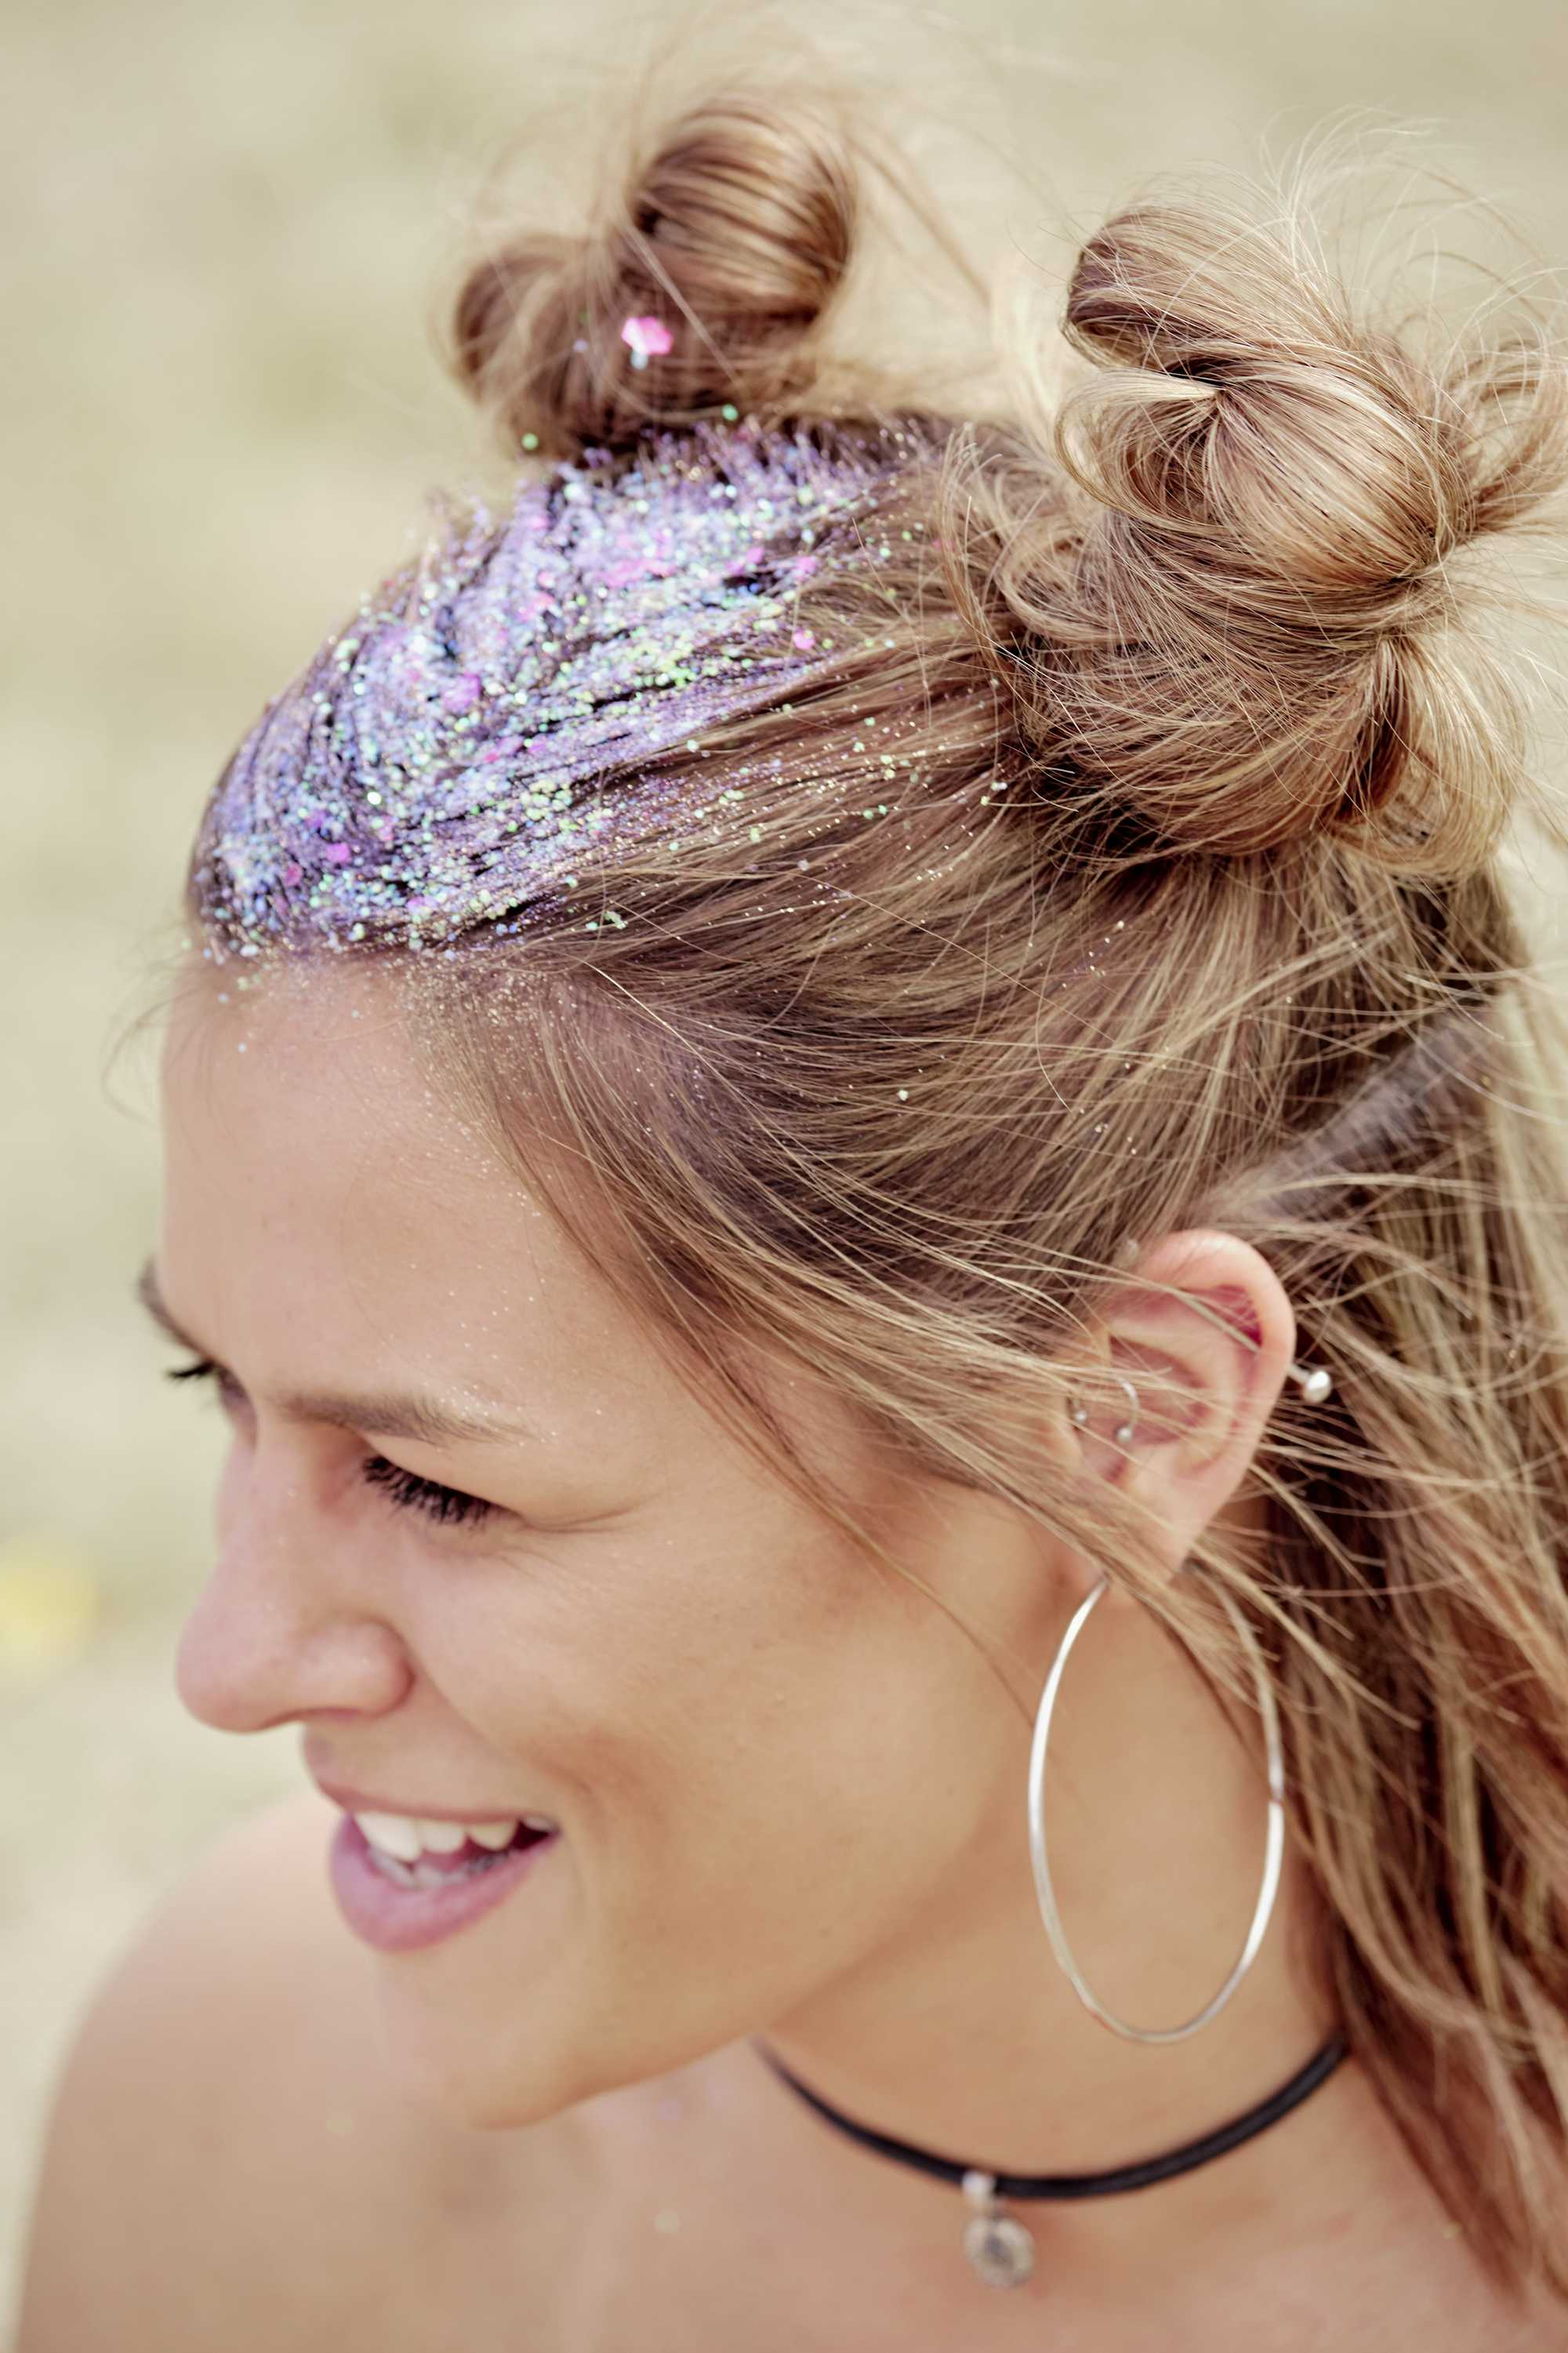 Brown blonde woman with glitter in her half-up buns